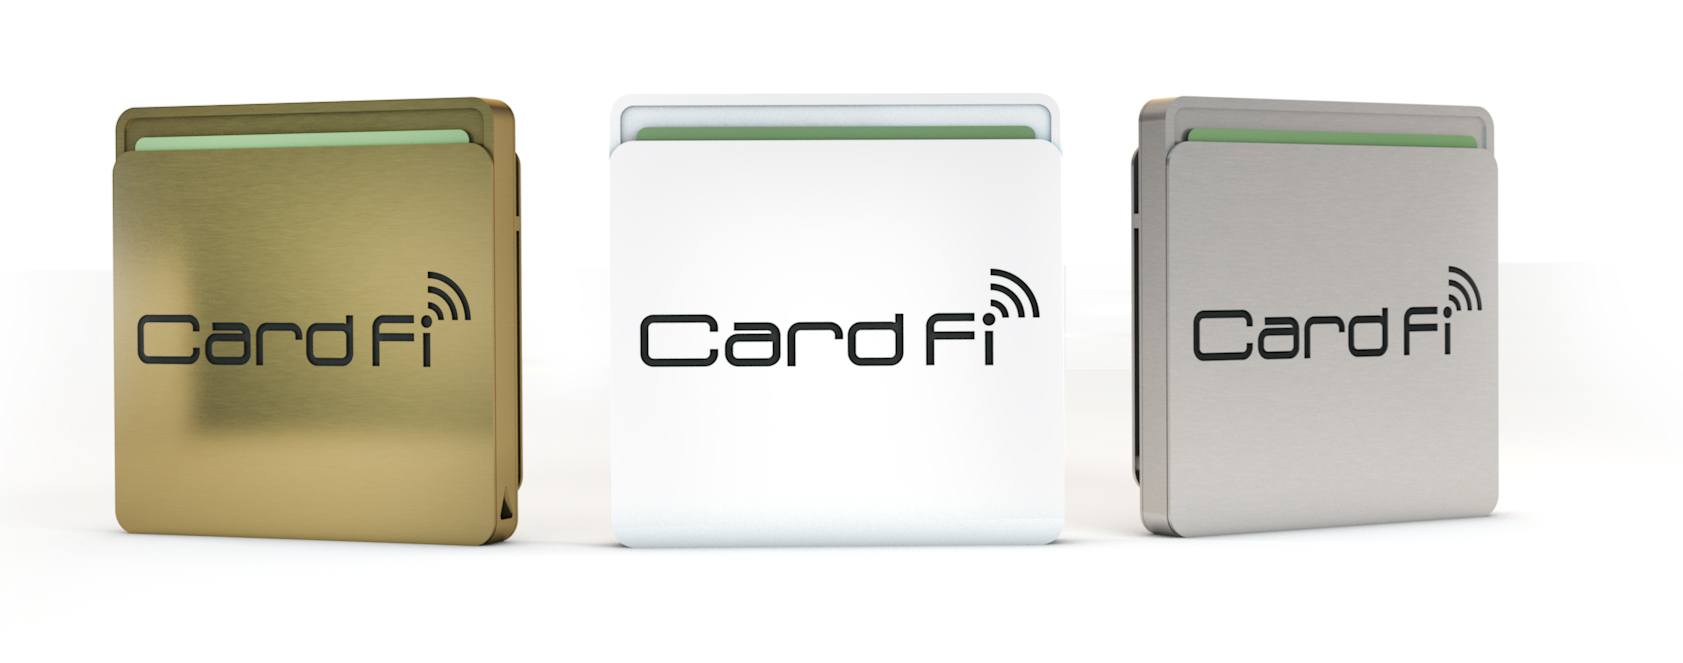 cardfi world s first ibeacon business card indiegogo cardfi is going to revolutionize the way business associates network each other and so much more you are looking at the world s first ibeacon